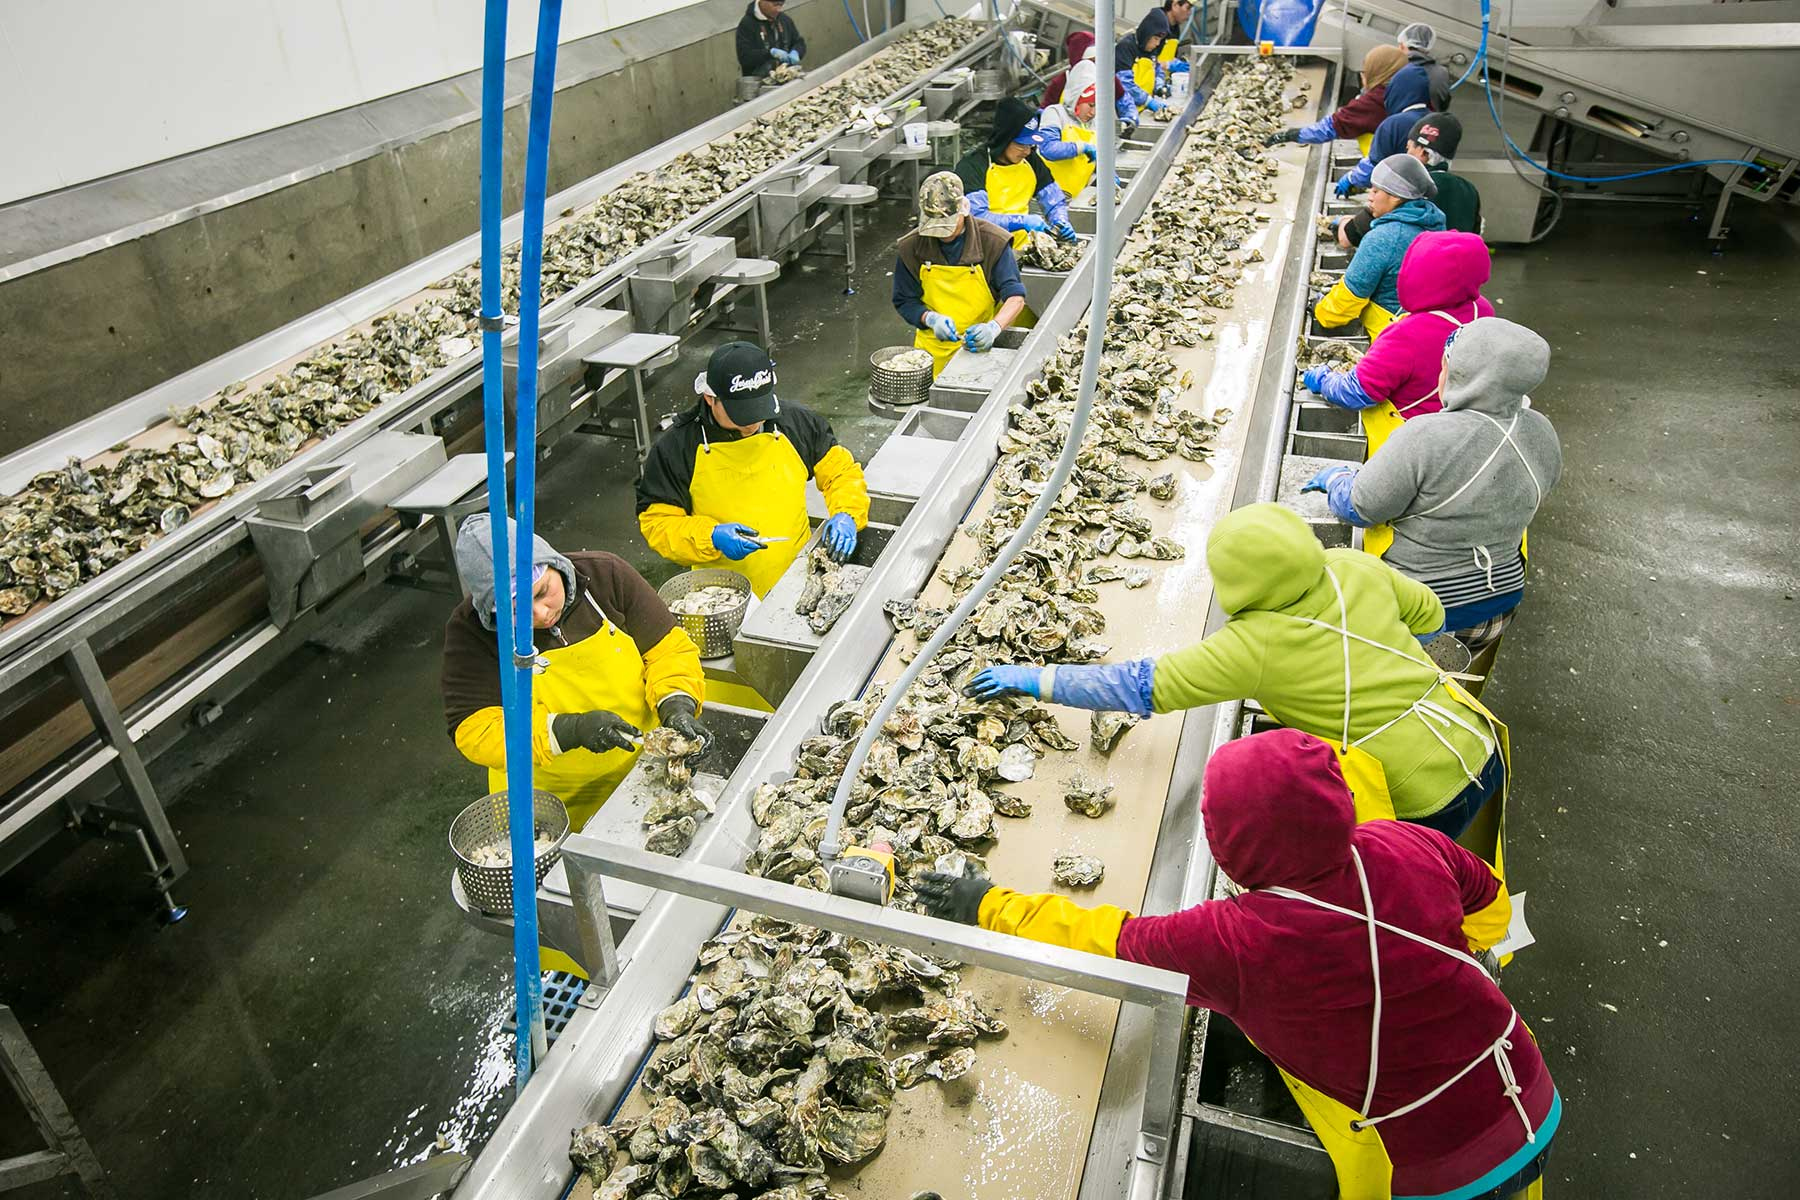 Workers shuck oysters at the Taylor Shellfish processing facility in Shelton, Washington. The shellfish industry directly and indirectly employs more than 3,200 people in Washington alone.